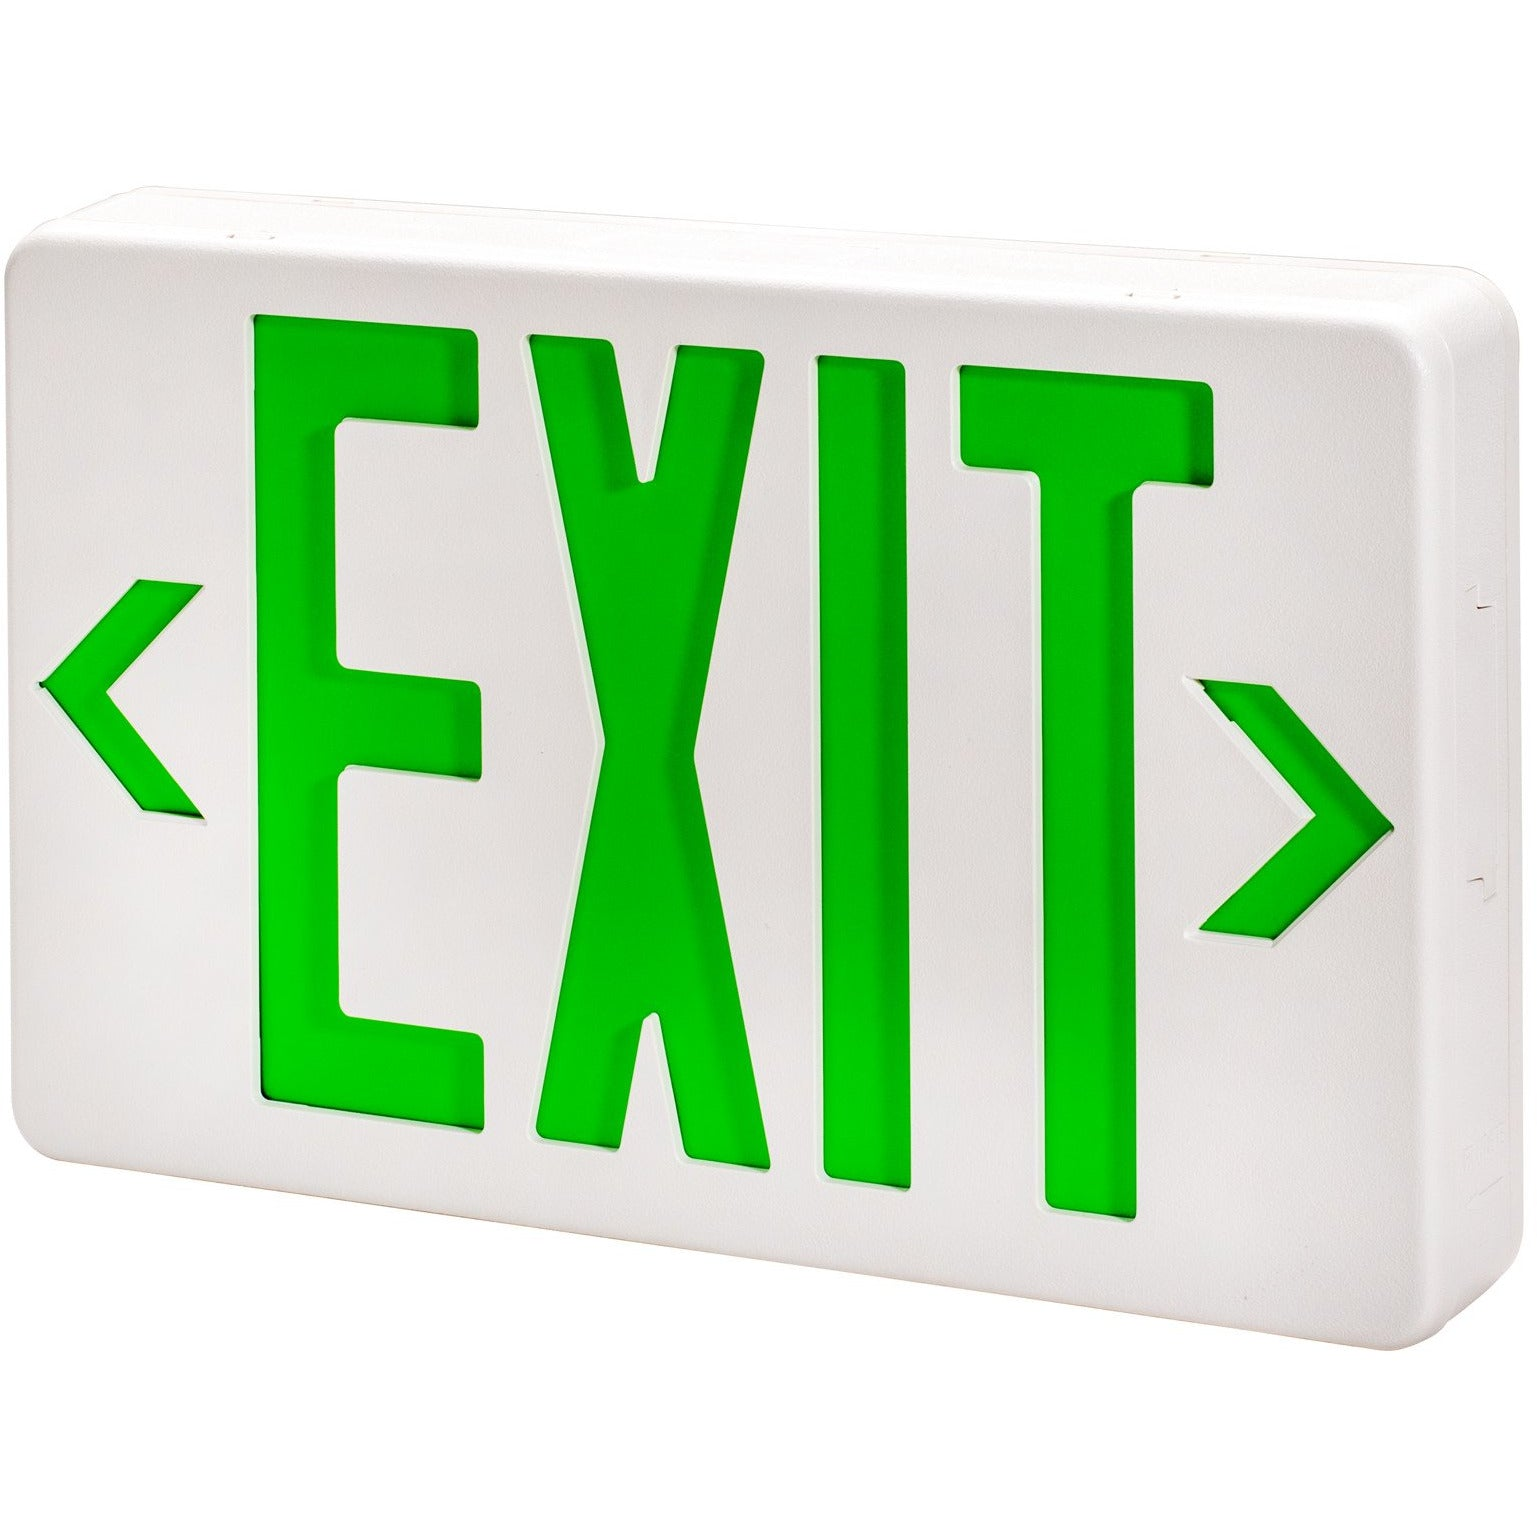 WH LED EXIT SIGN W/BATTERY BACK UP GREEN - CommerciaLight Distributors